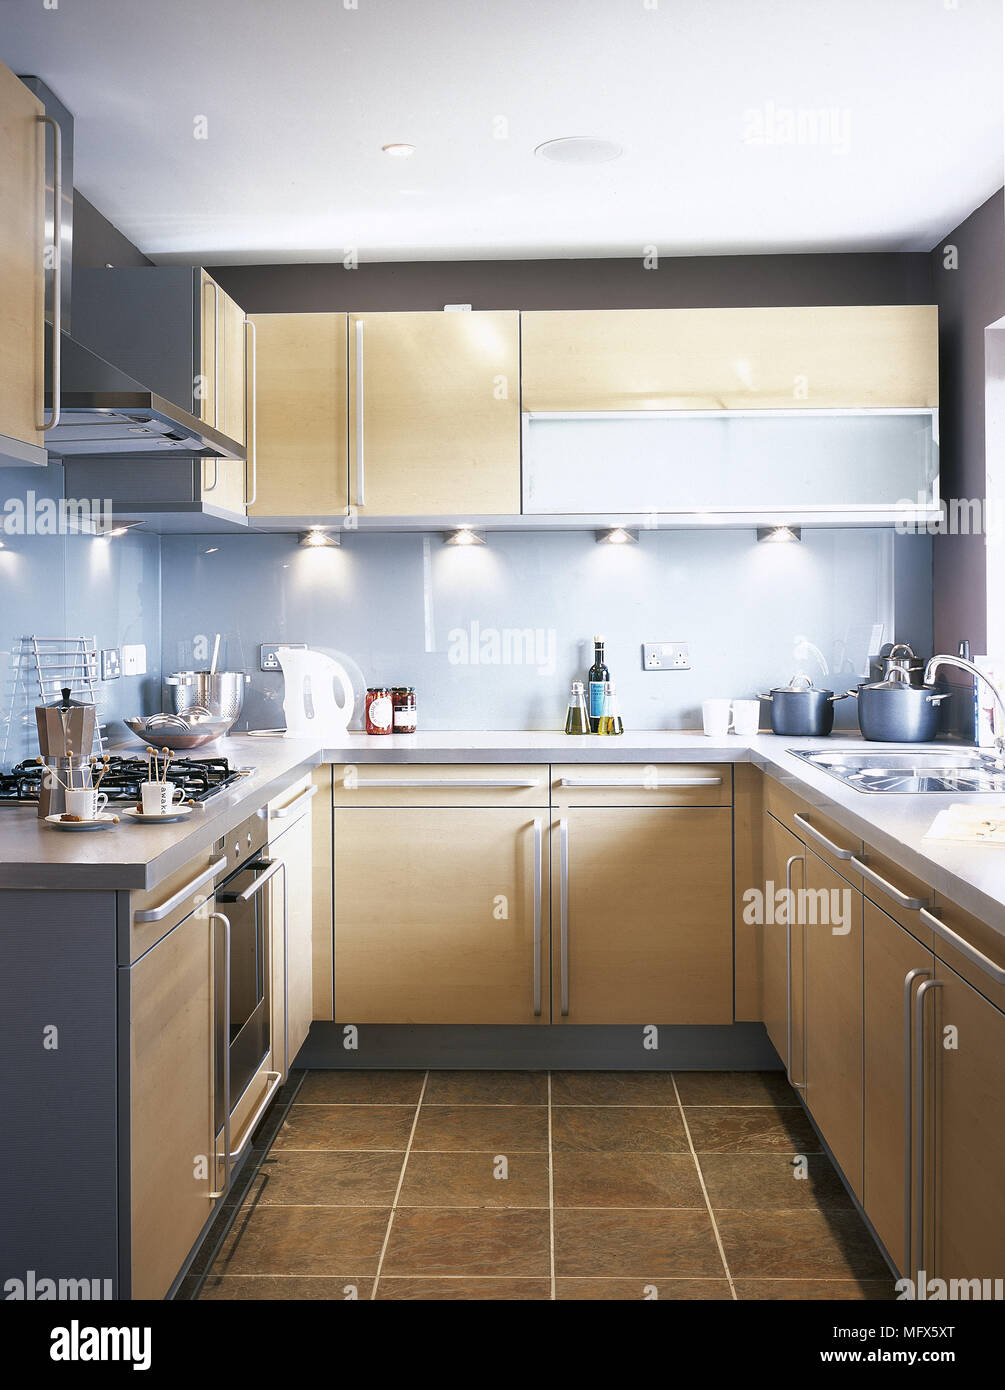 Modern galley kitchen with wooden cabinets under cabinet lighting modern galley kitchen with wooden cabinets under cabinet lighting and a tiled floor aloadofball Image collections